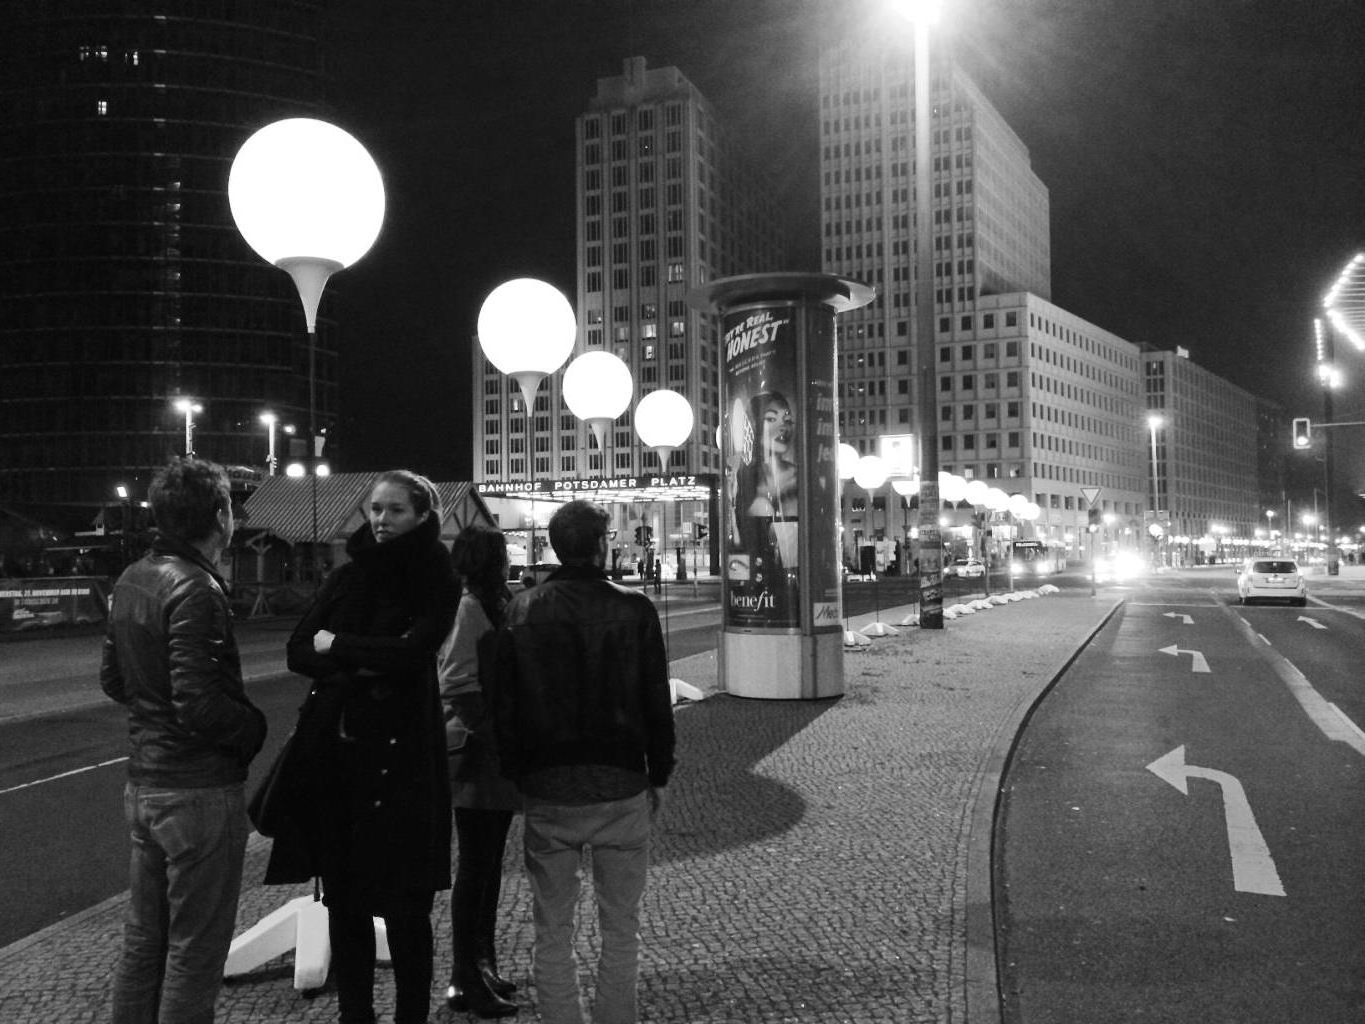 Observing the light installation lining the former path of the Berlin Wallat Potsdamer Platz, during the 25th Anniversary of the Fall of the Berlin Wall.